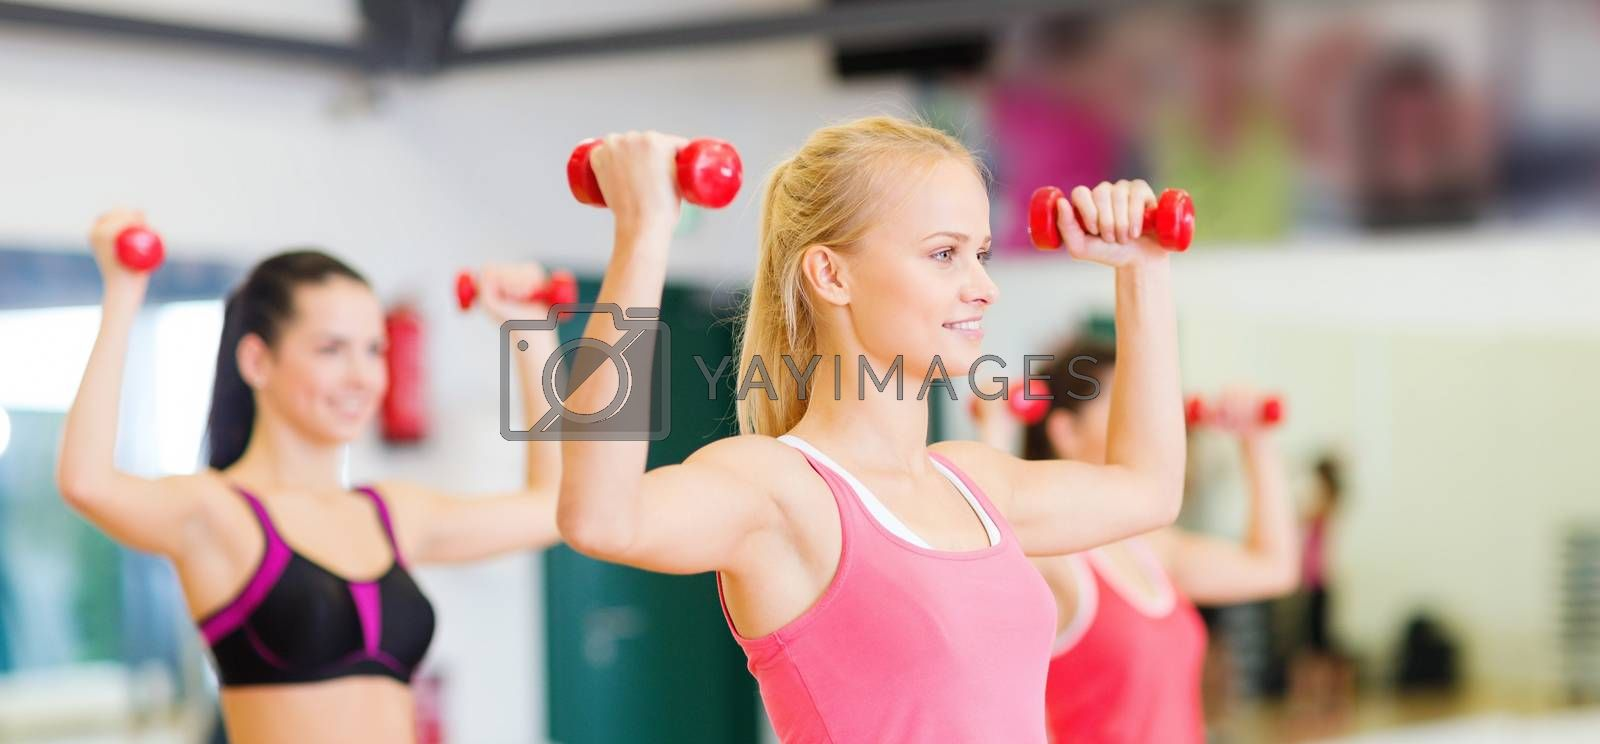 fitness, sport, training, gym and lifestyle concept - group of smiling women working out with dumbbells in the gym